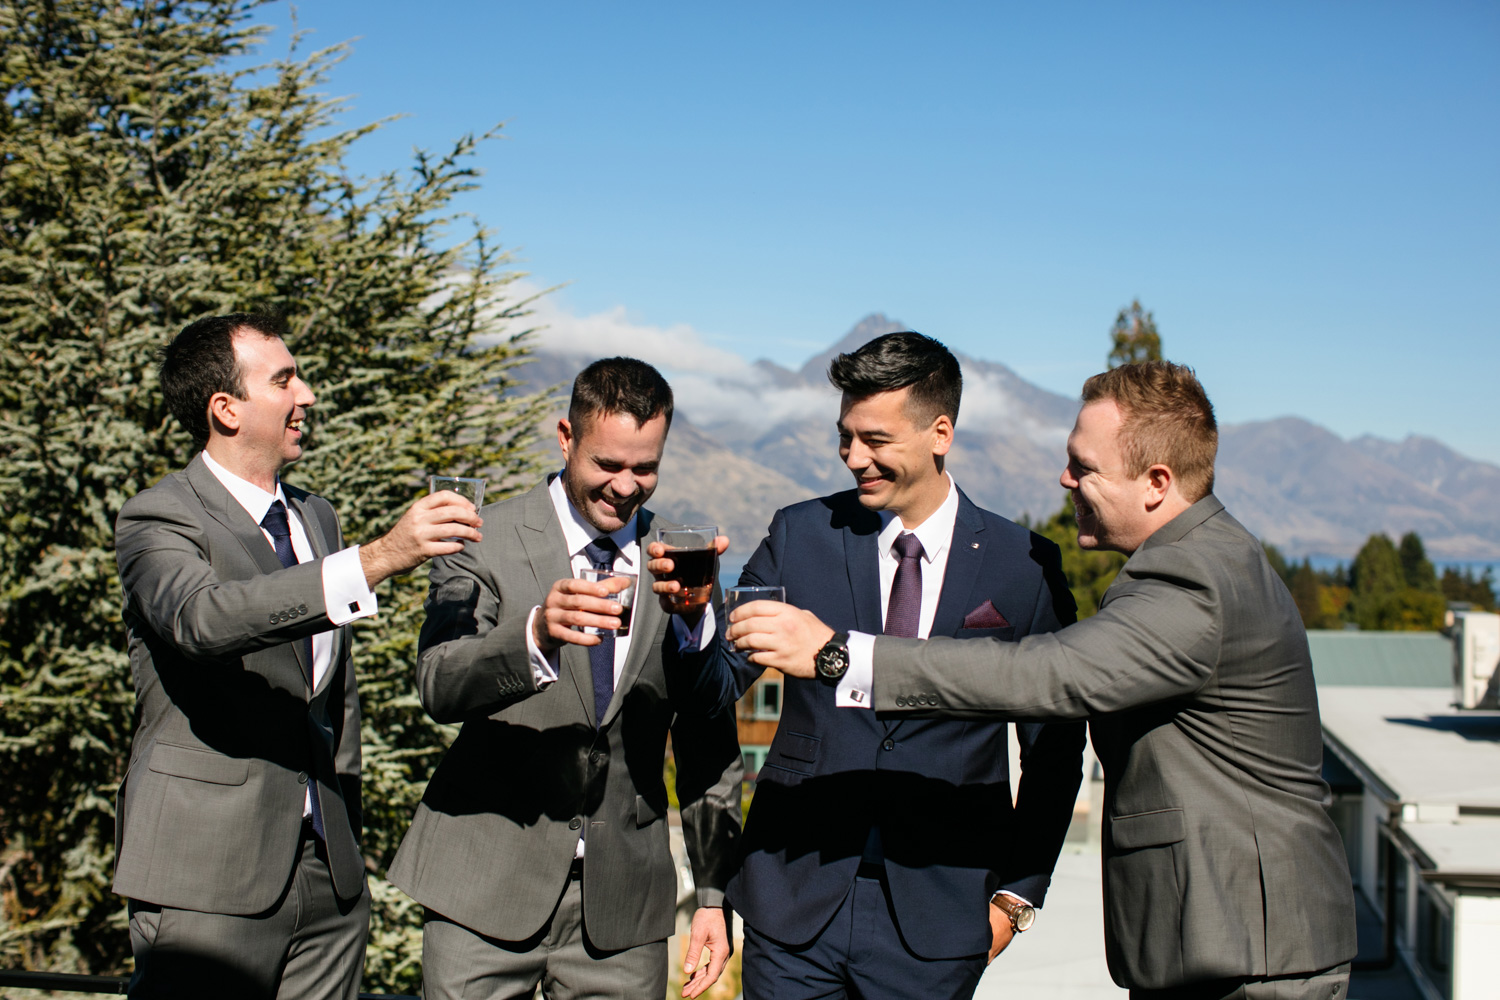 wedding-0310-drinks-cheers-view-blue-suit-brisbane.jpg